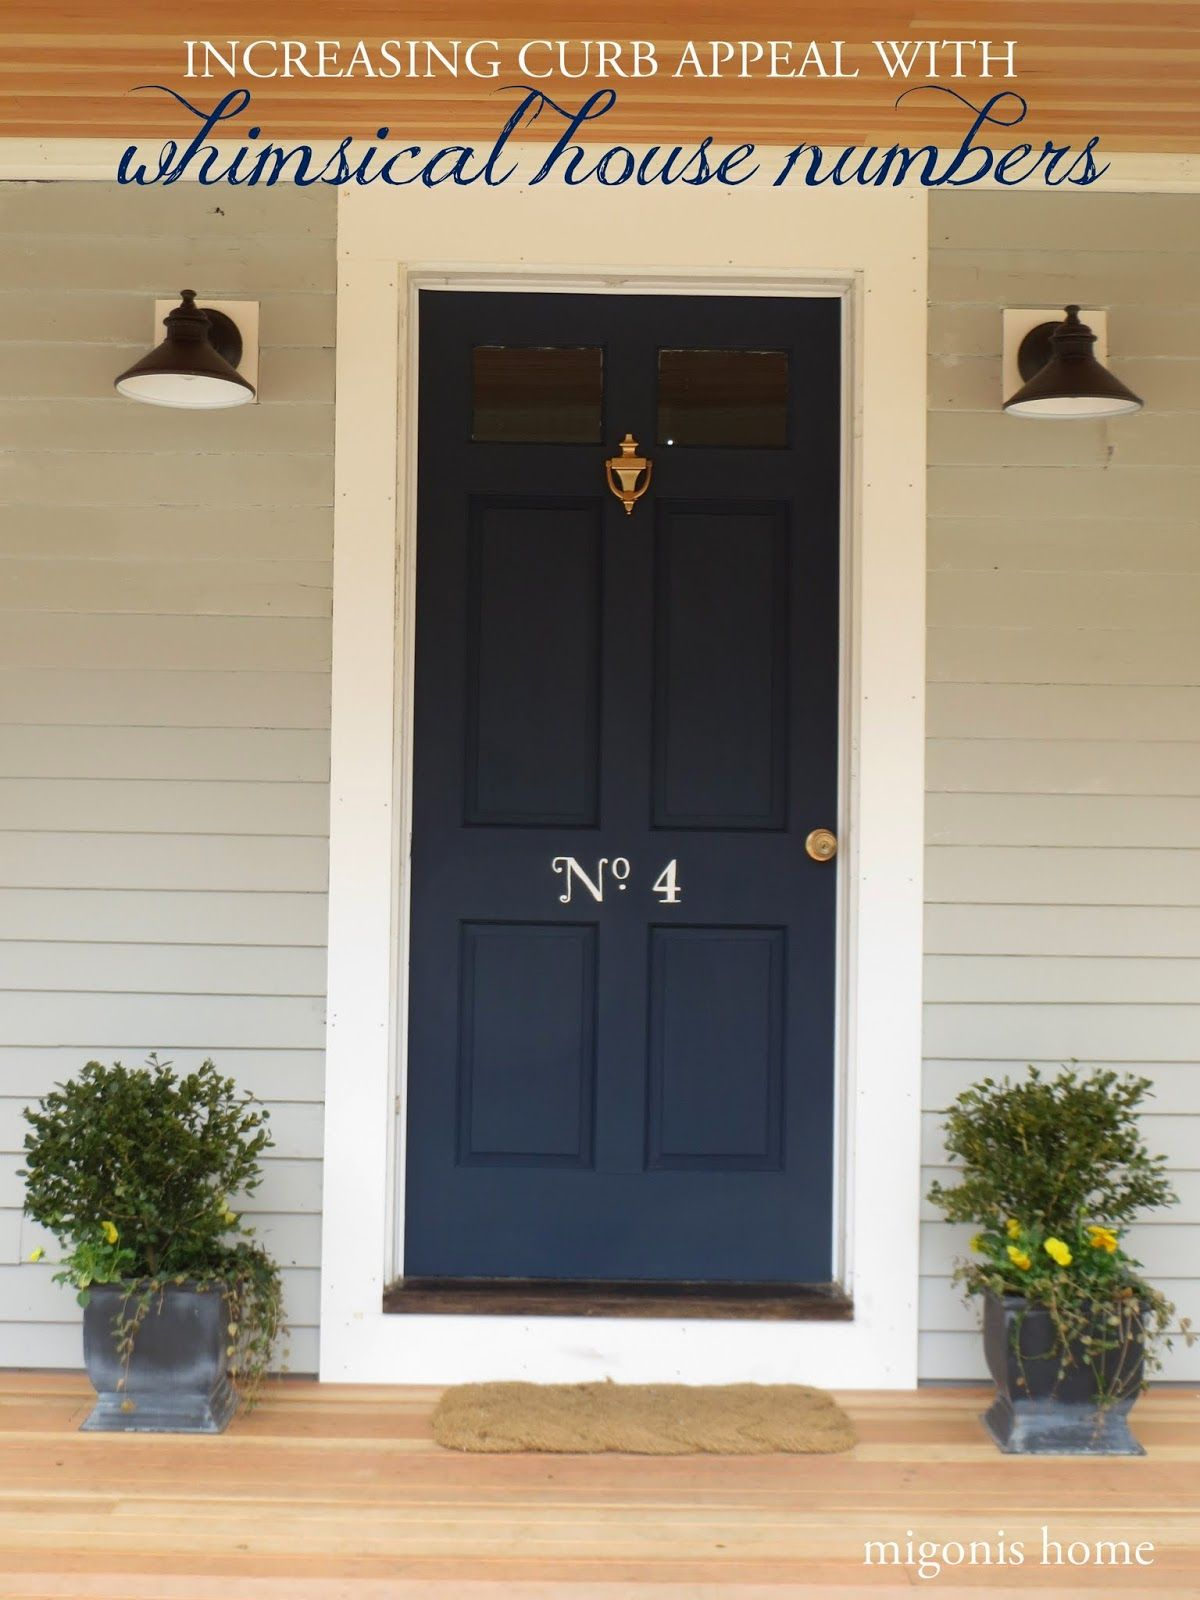 Increase Curb Appeal By Adding Whimsical House Numbers Inspired By